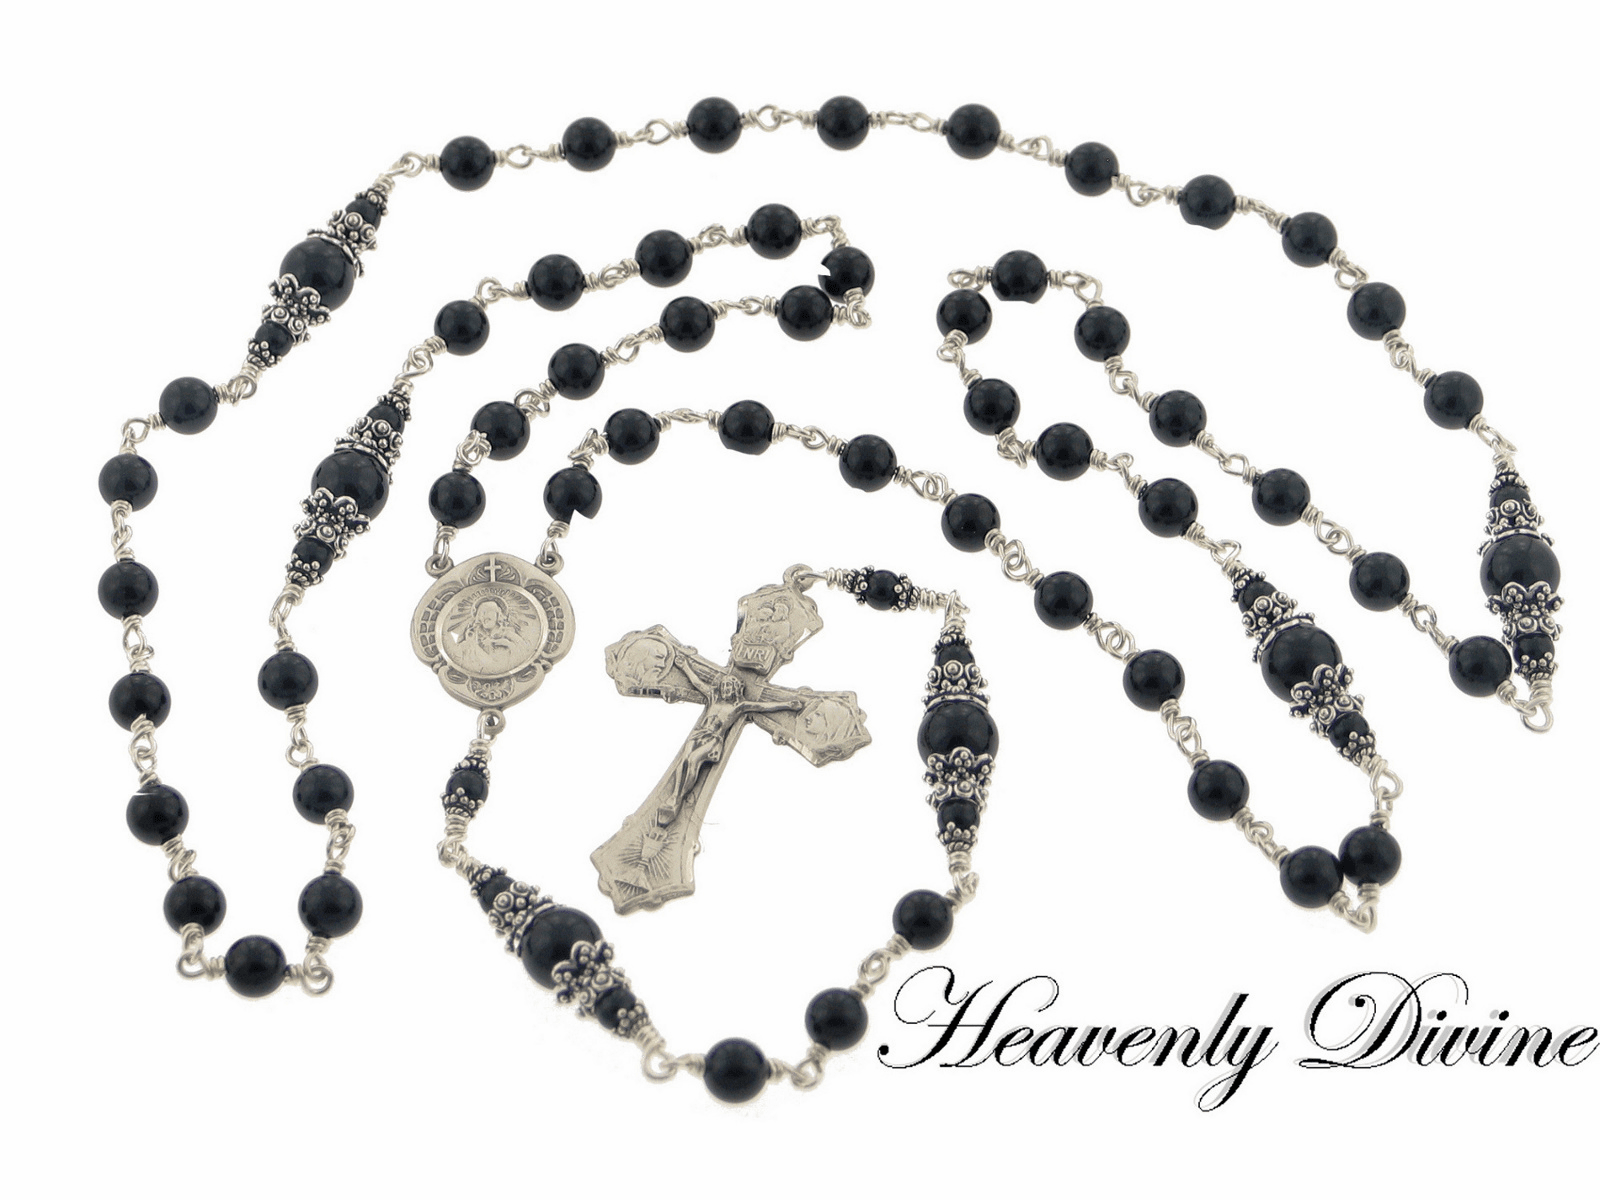 Sacred Heart of Jesus Black Onyx Sterling Silver Rosary by Heavenly Divine